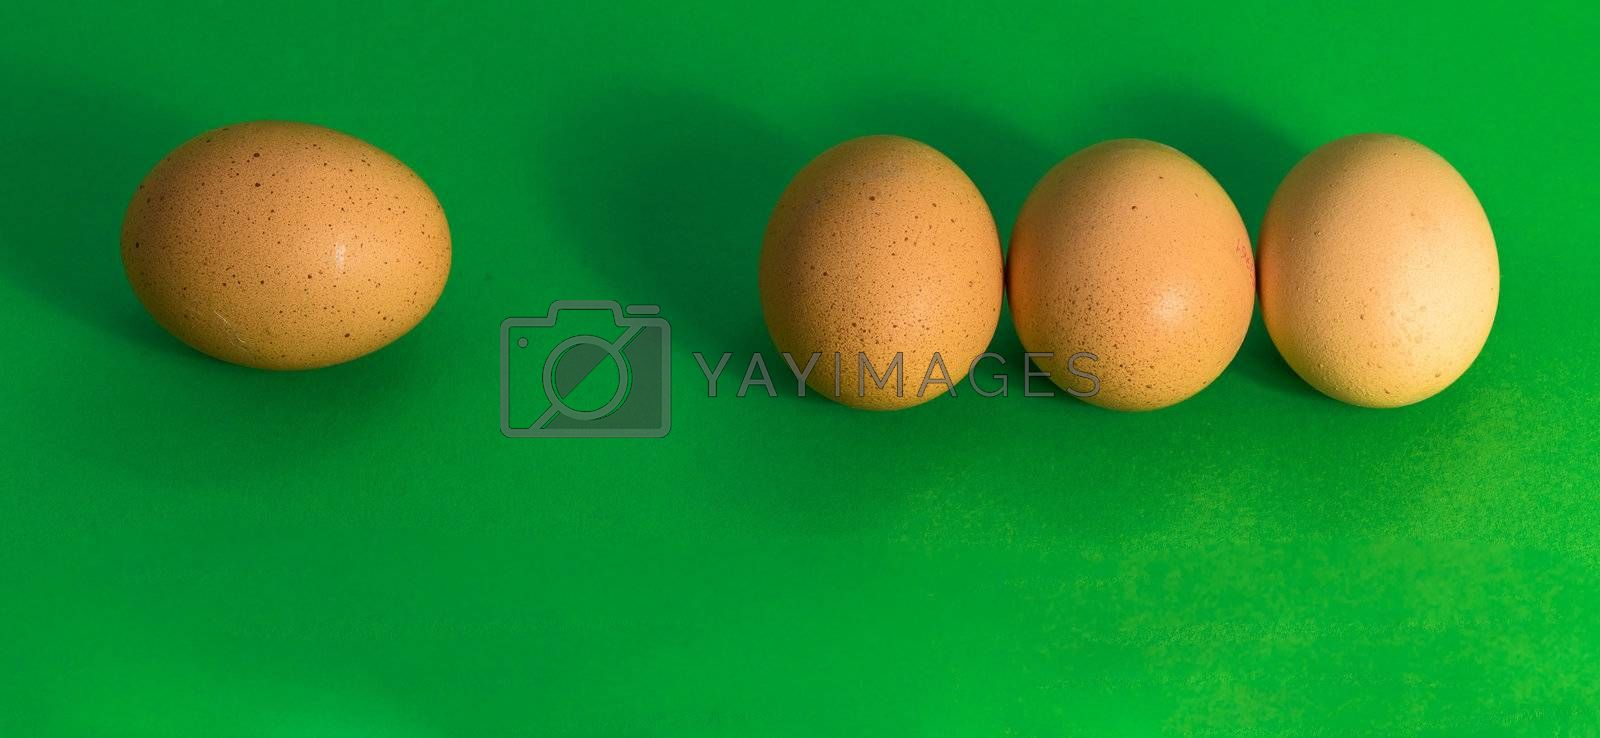 Abstract picture at Easter, three eggs lying close to each other and a single sad egg further away, on grass-green background, concept lonely